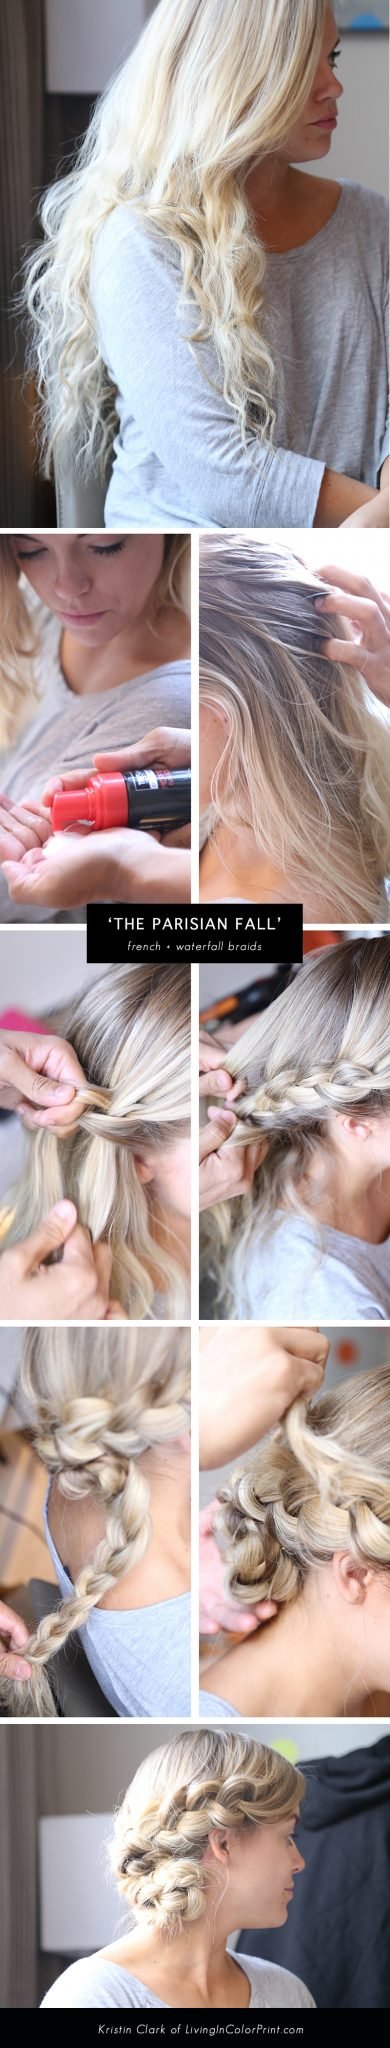 The Parisian Fall Tutorial